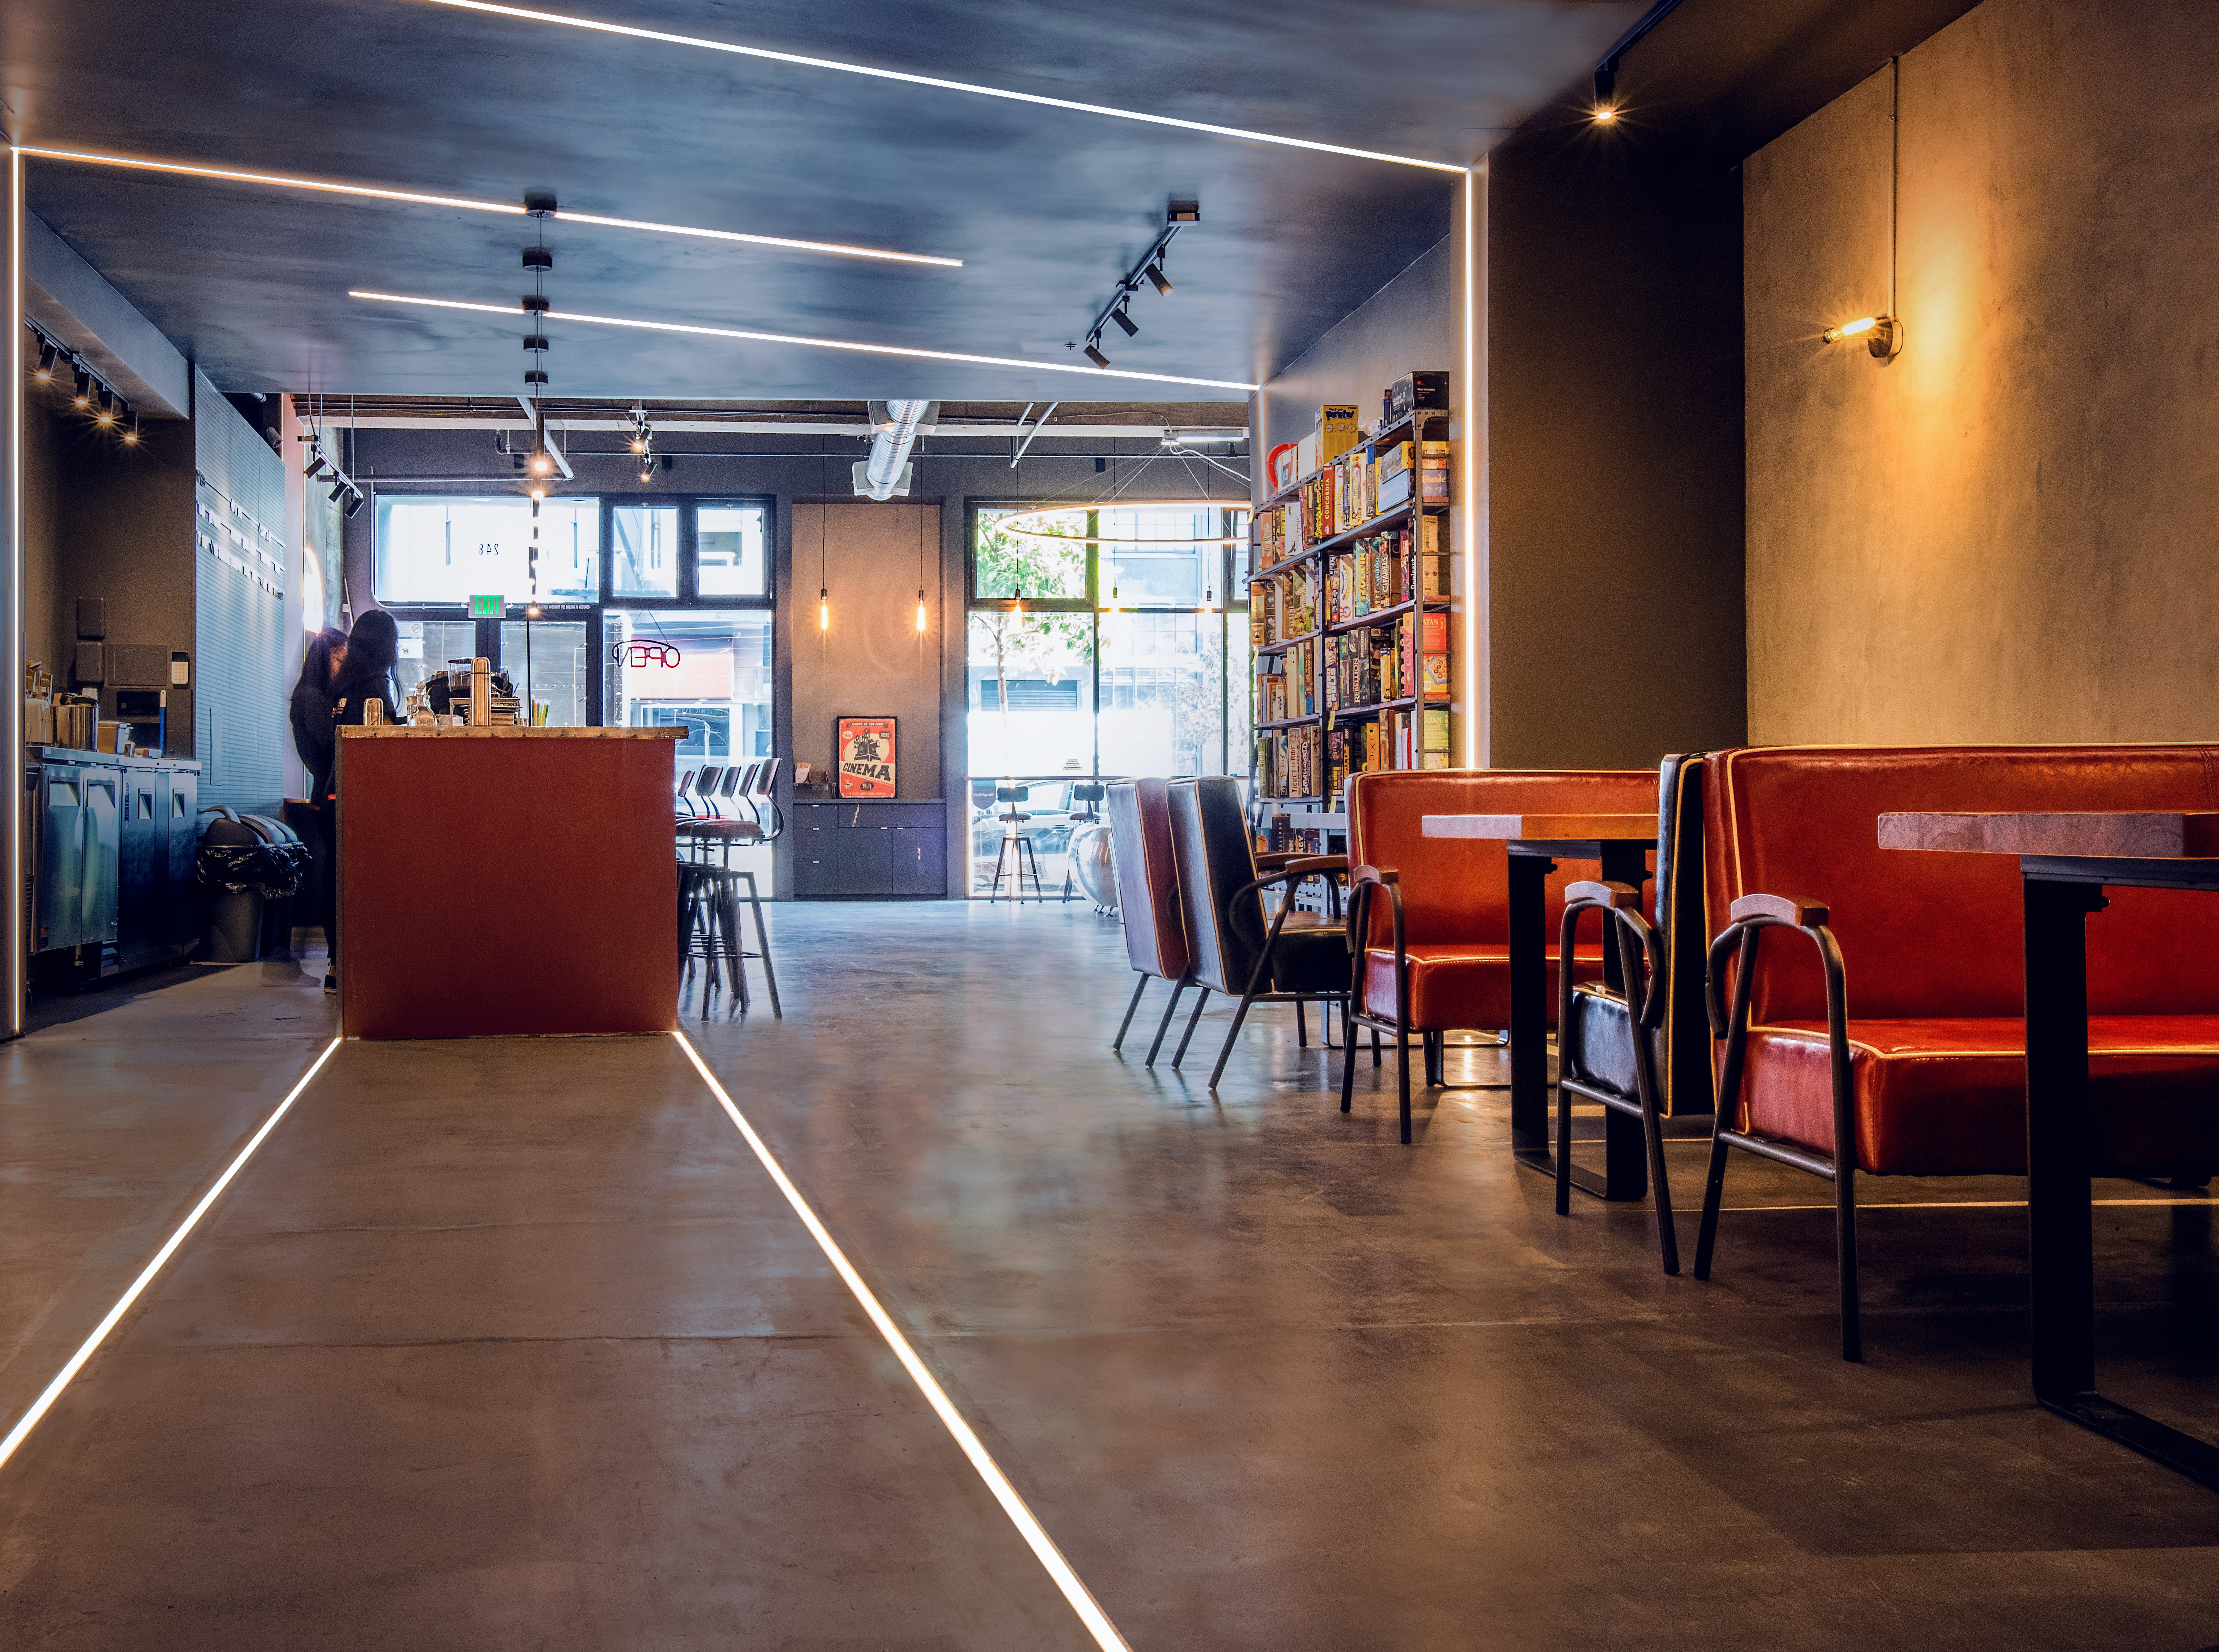 Iso ideas plaform 248 sf cafe dining tri nguyen